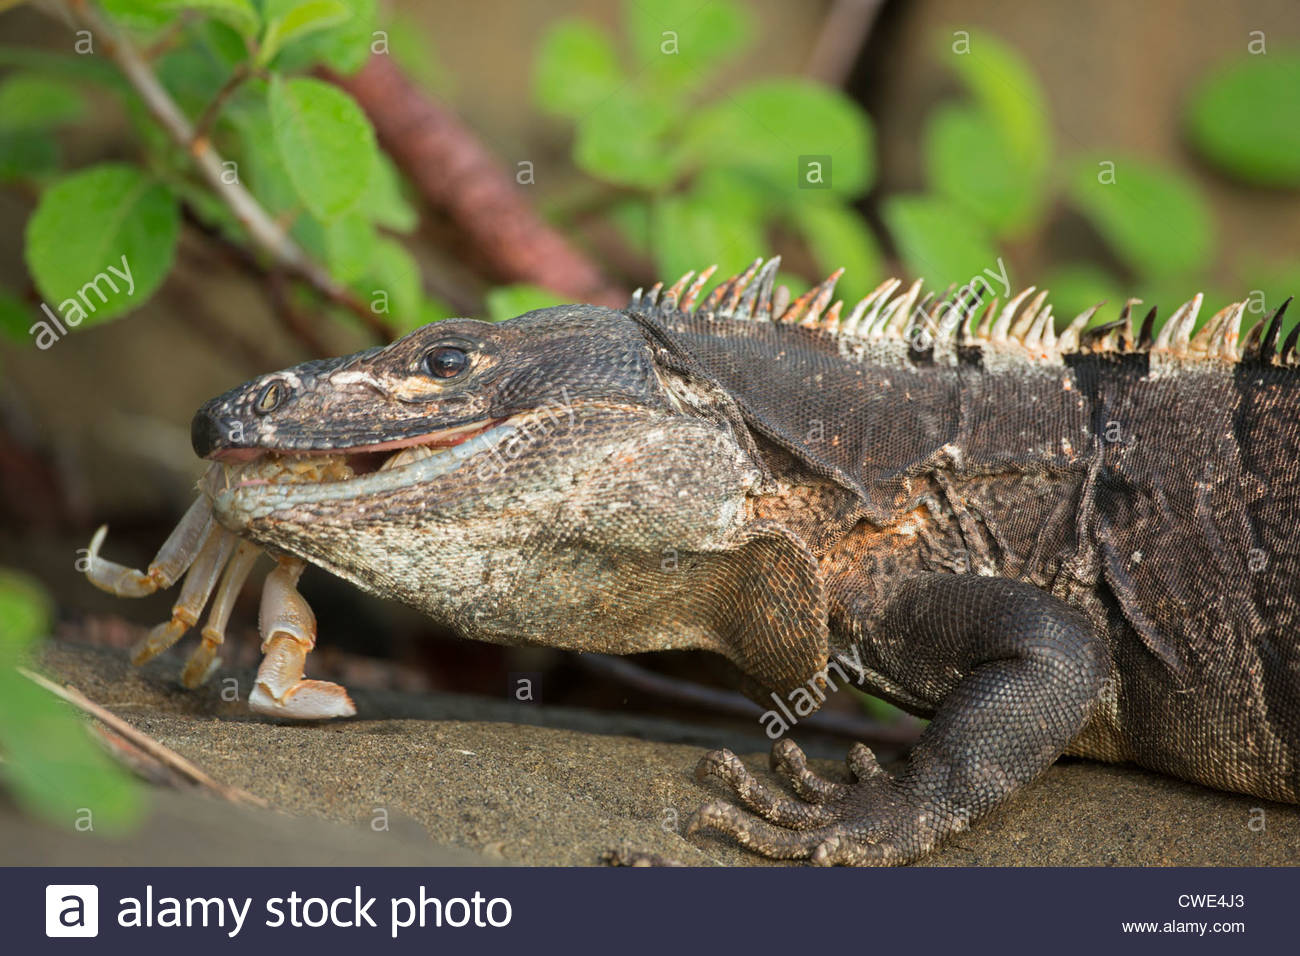 Black Spiny Tailed Iguana svg #16, Download drawings